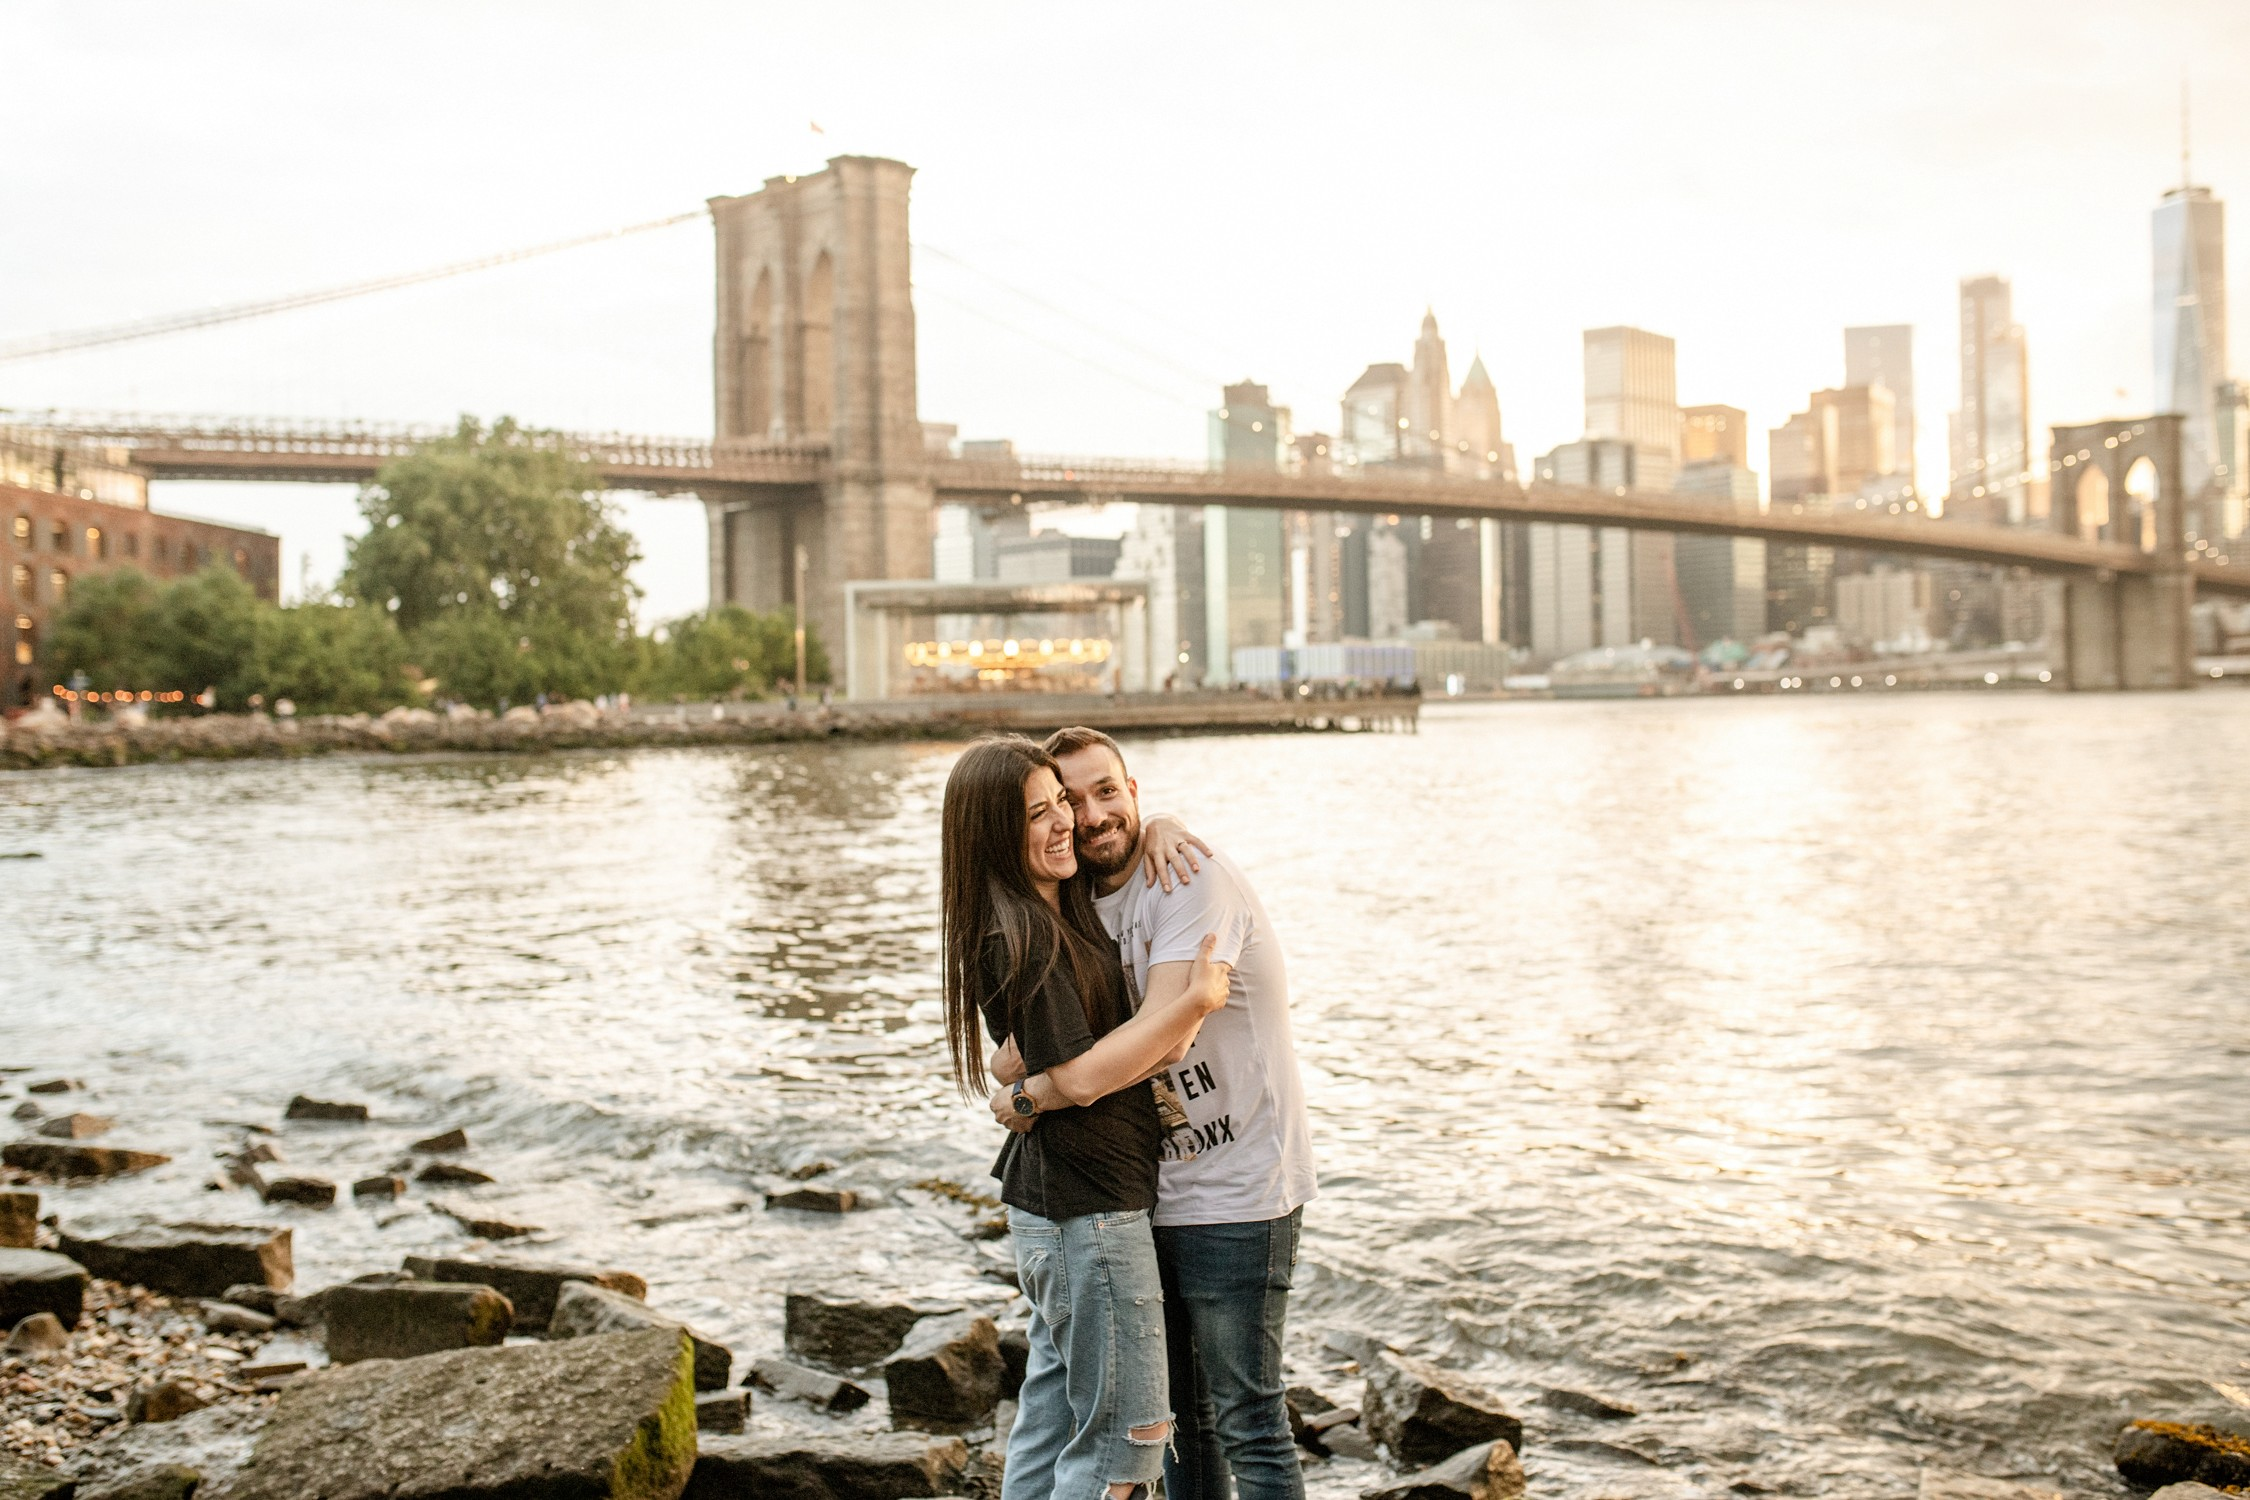 Engagement Photos in DUMBO - Couple holding each other on Pebble Beach at sunset with the Brooklyn Bridge in the background